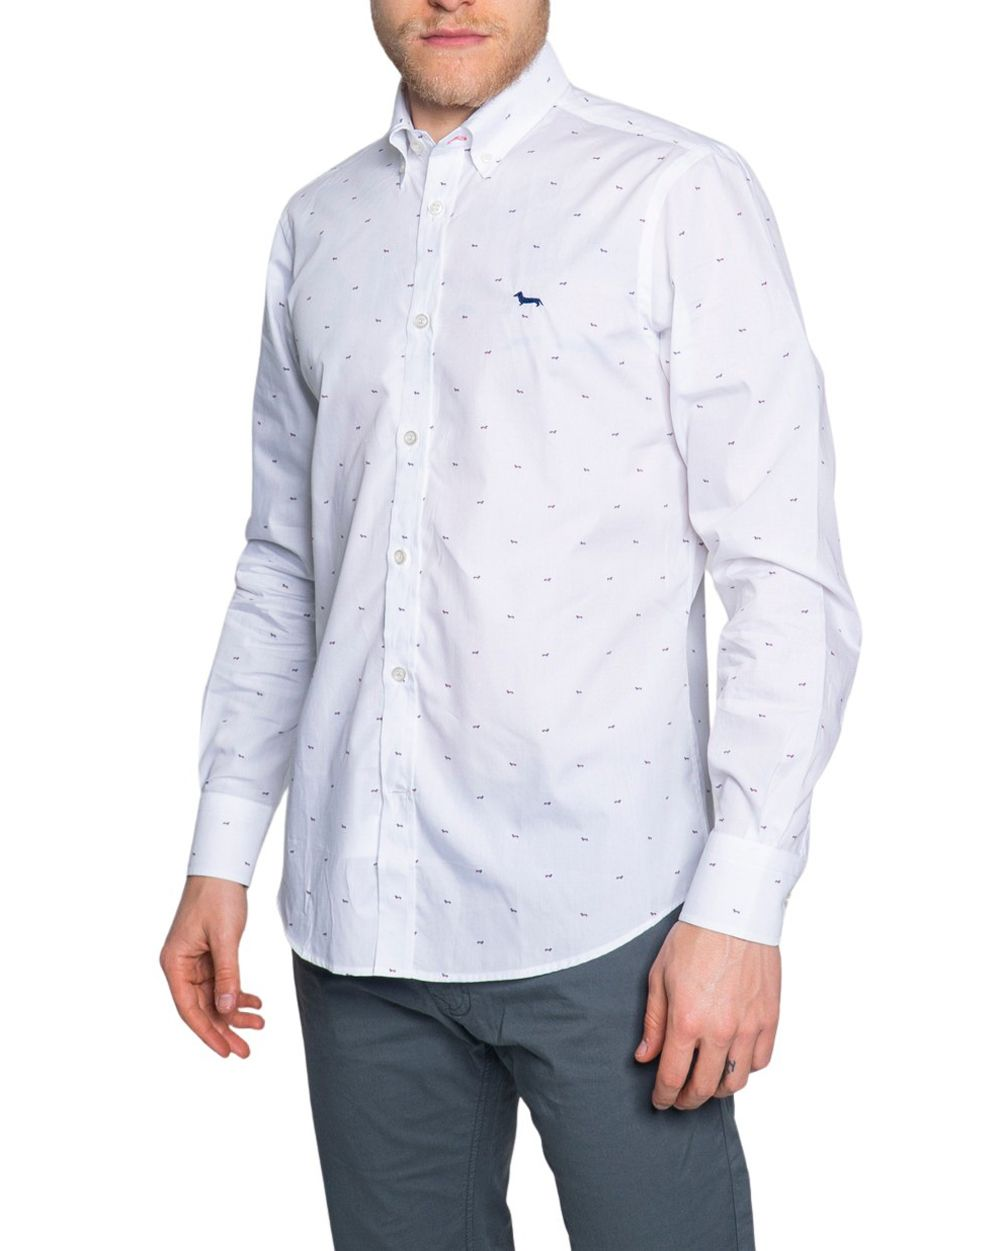 Harmont & Blaine HARMONT & BLAINE MEN'S CRF001011604WHITE WHITE COTTON SHIRT